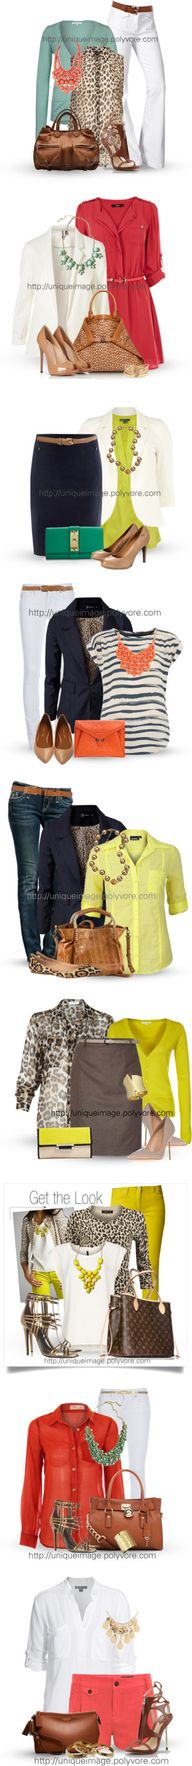 79493ccfbfeb7a2460ef7c165bdb1b7b 9 Fashion Tips to Dress for Less